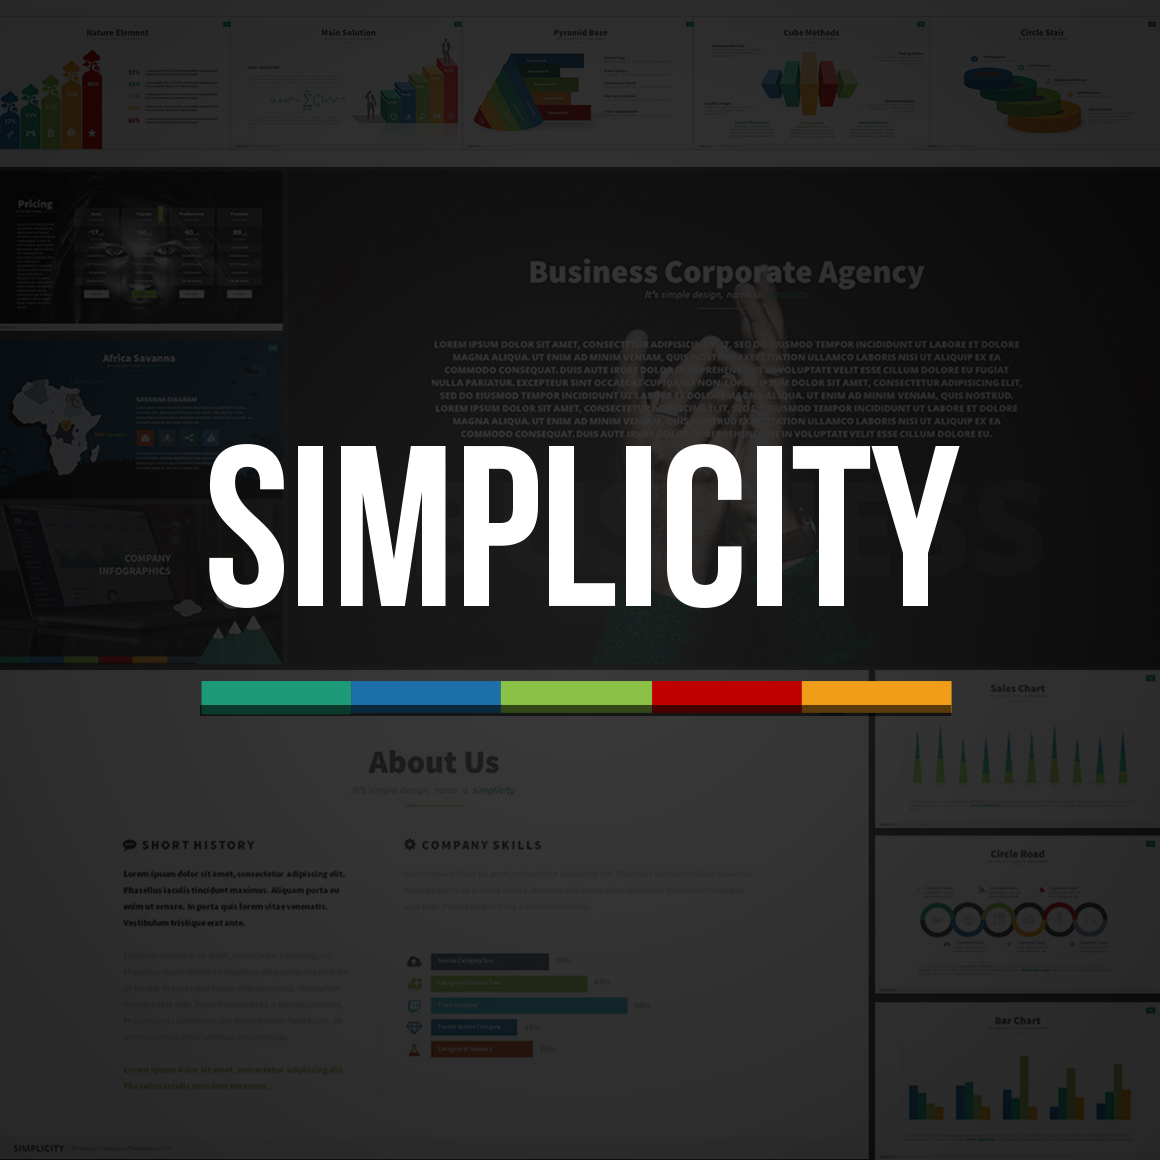 Simplicity PowerPoint Template #63817